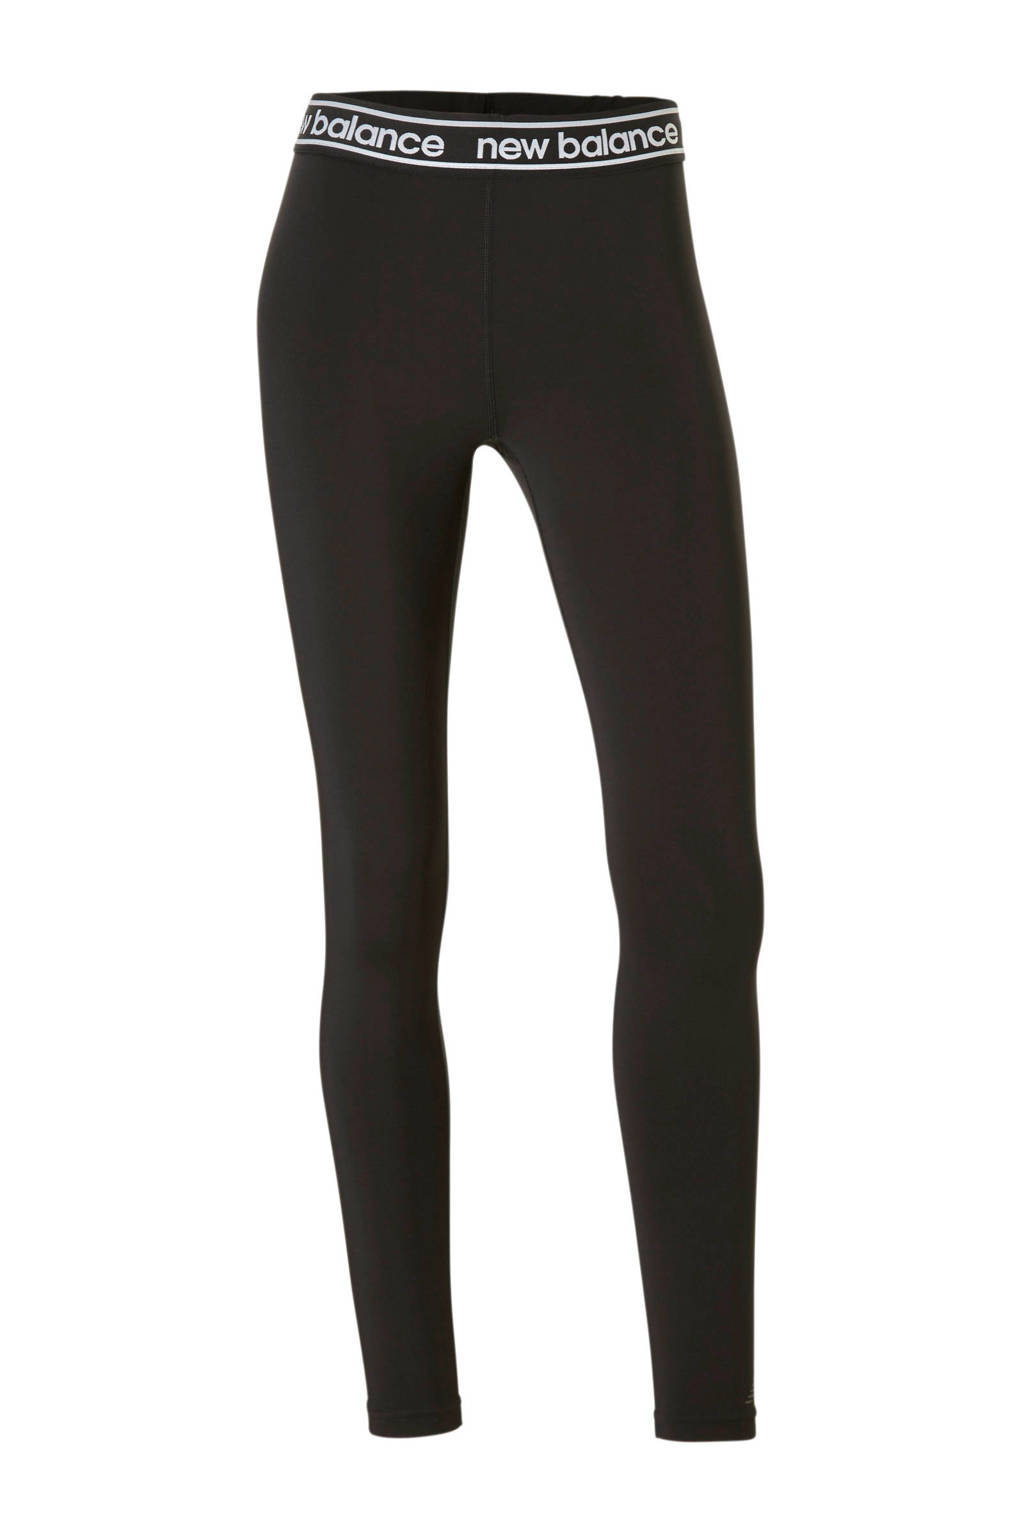 New Balance 7/8 sportlegging zwart, Zwart